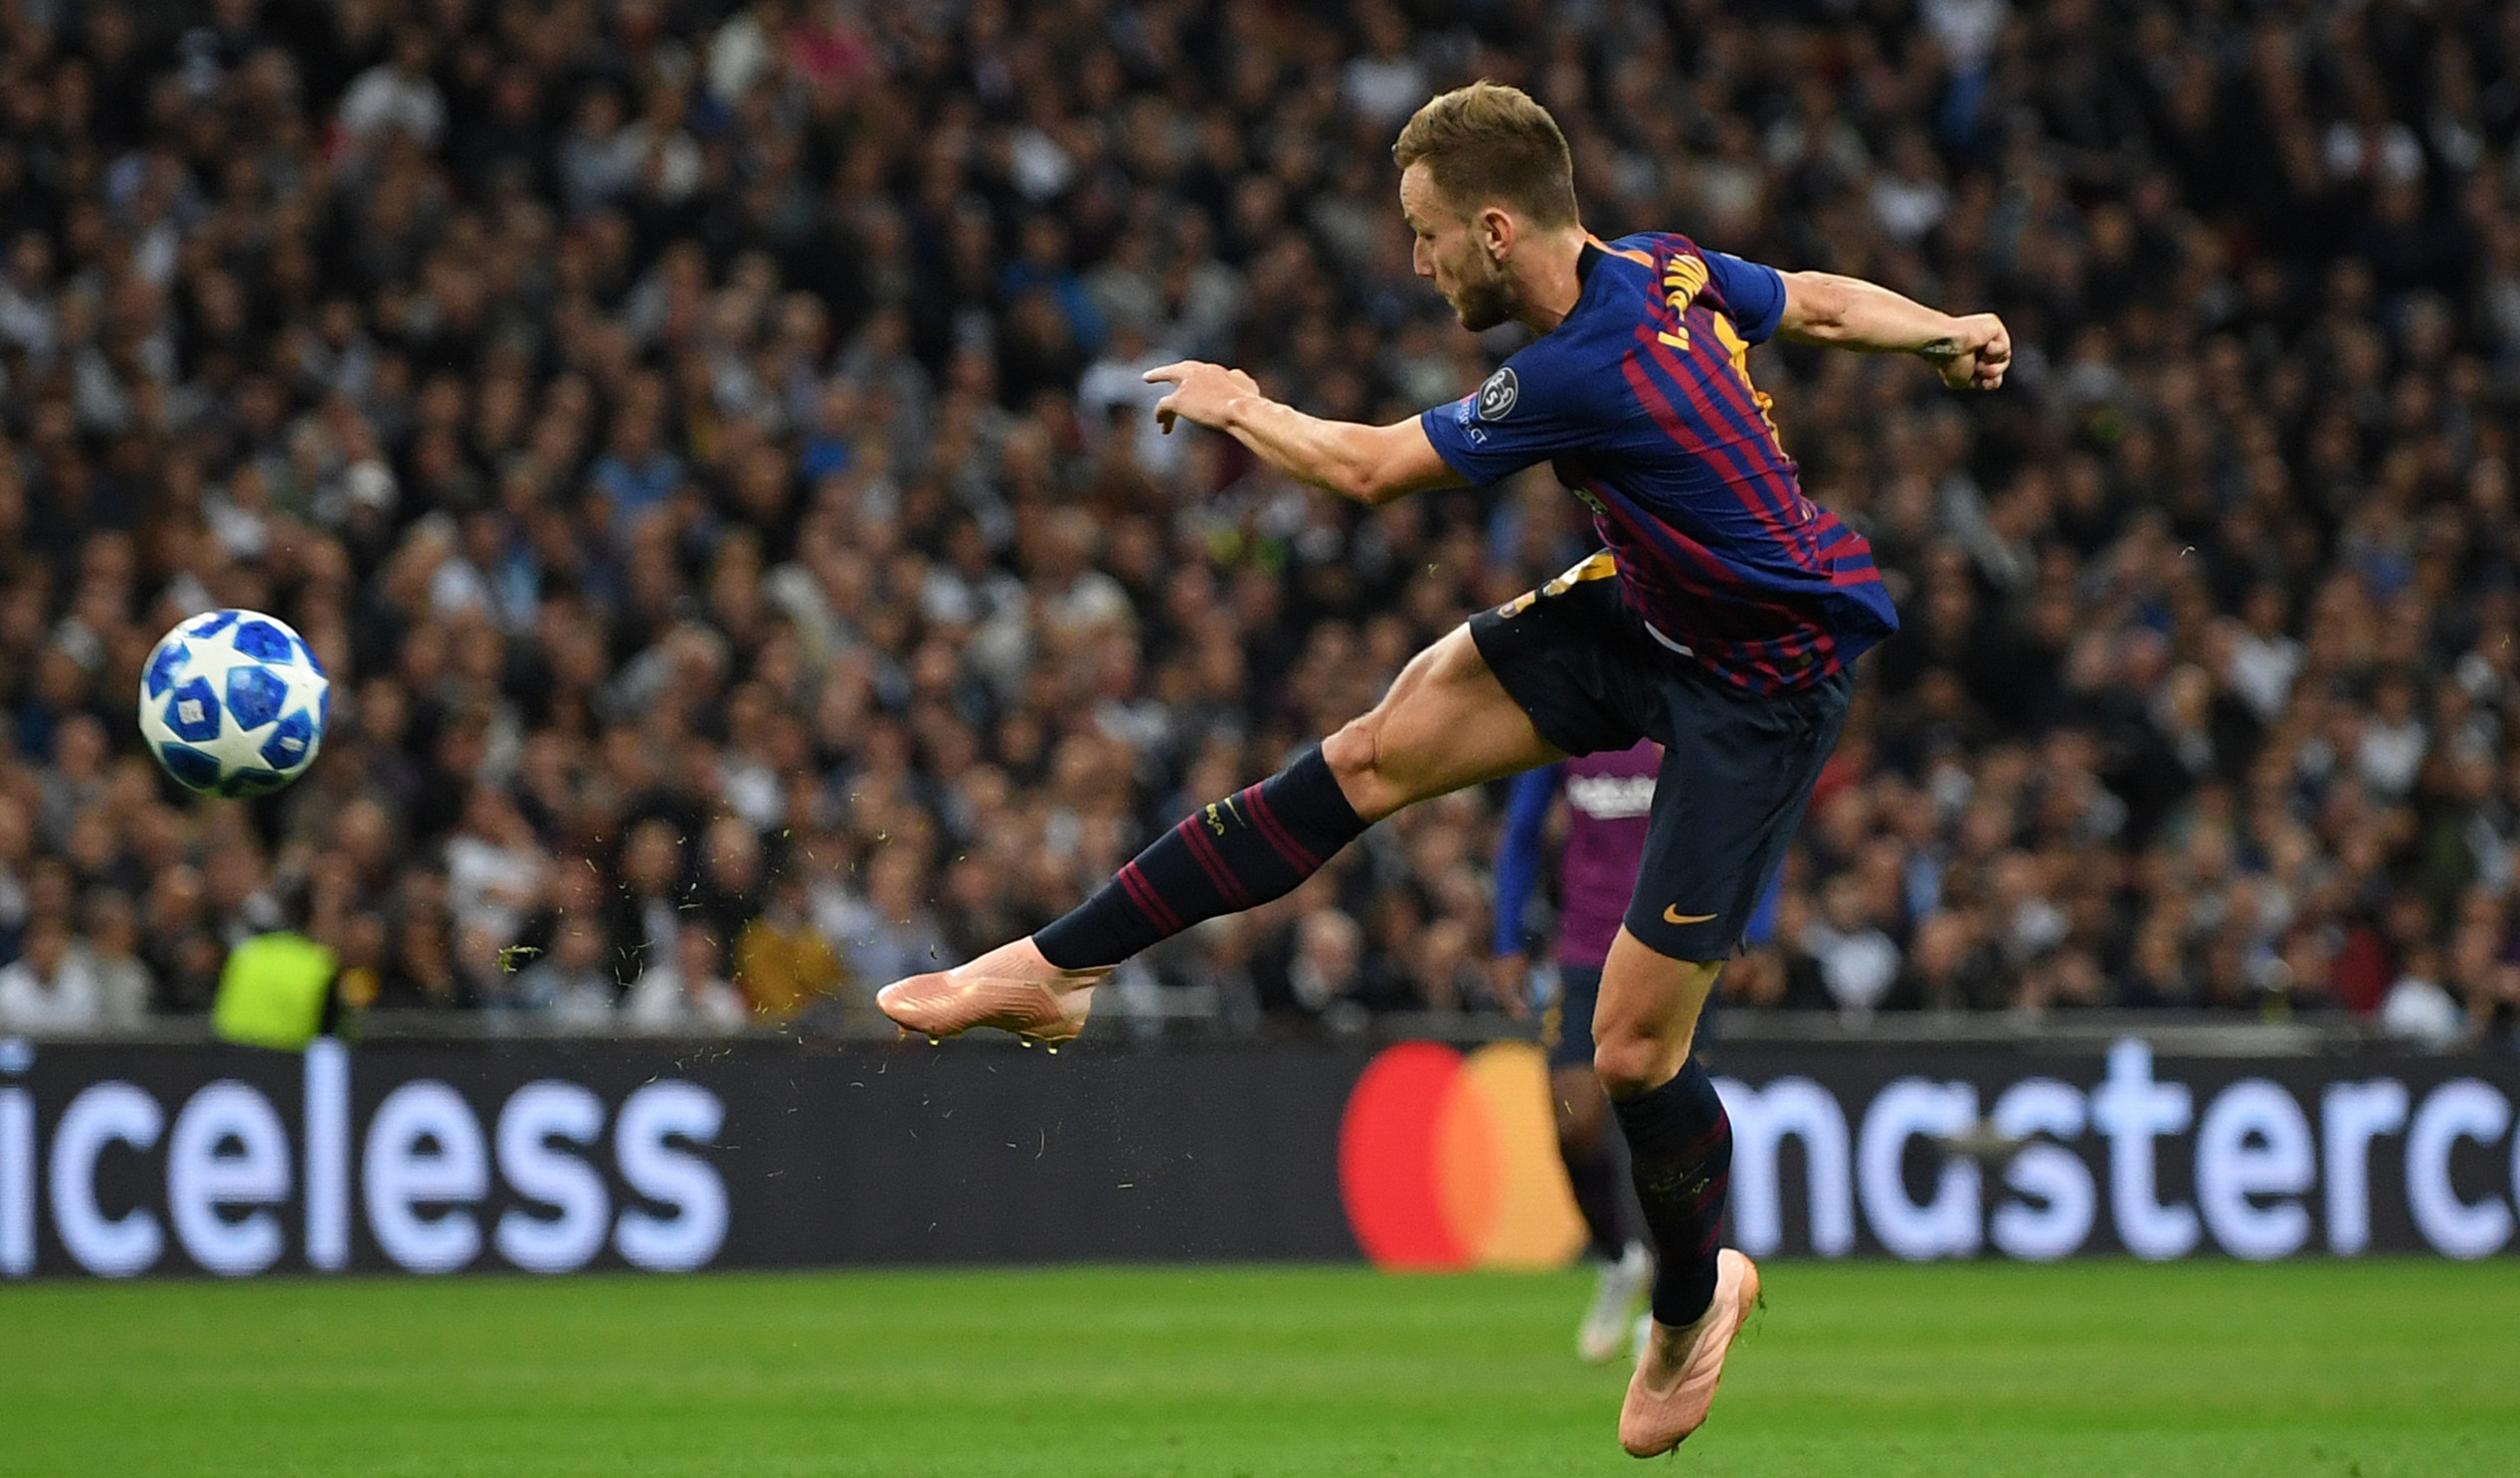 2018-19 UEFA Champions League: Best goals of the season